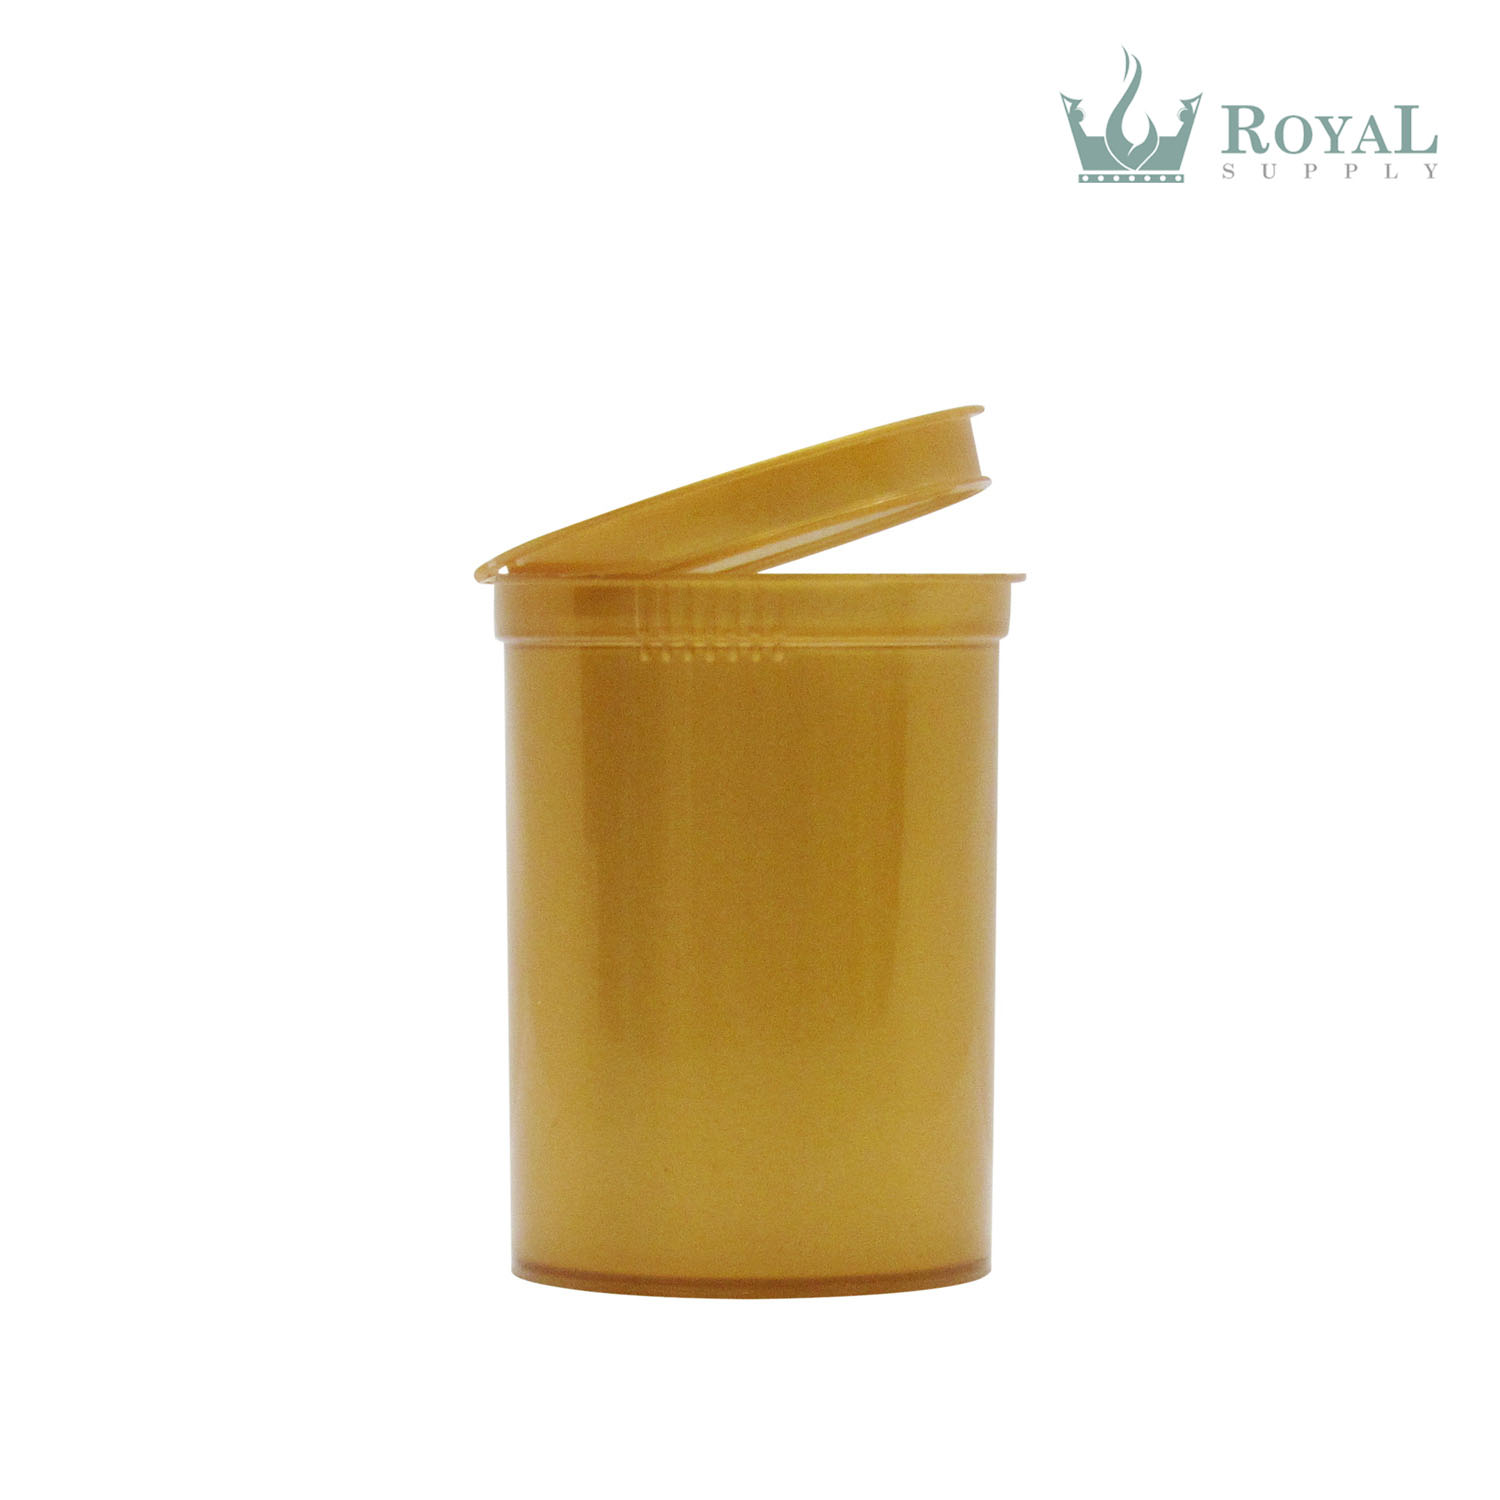 30 Dram High Quality Opaque Child Resistant Pop Top Bottles